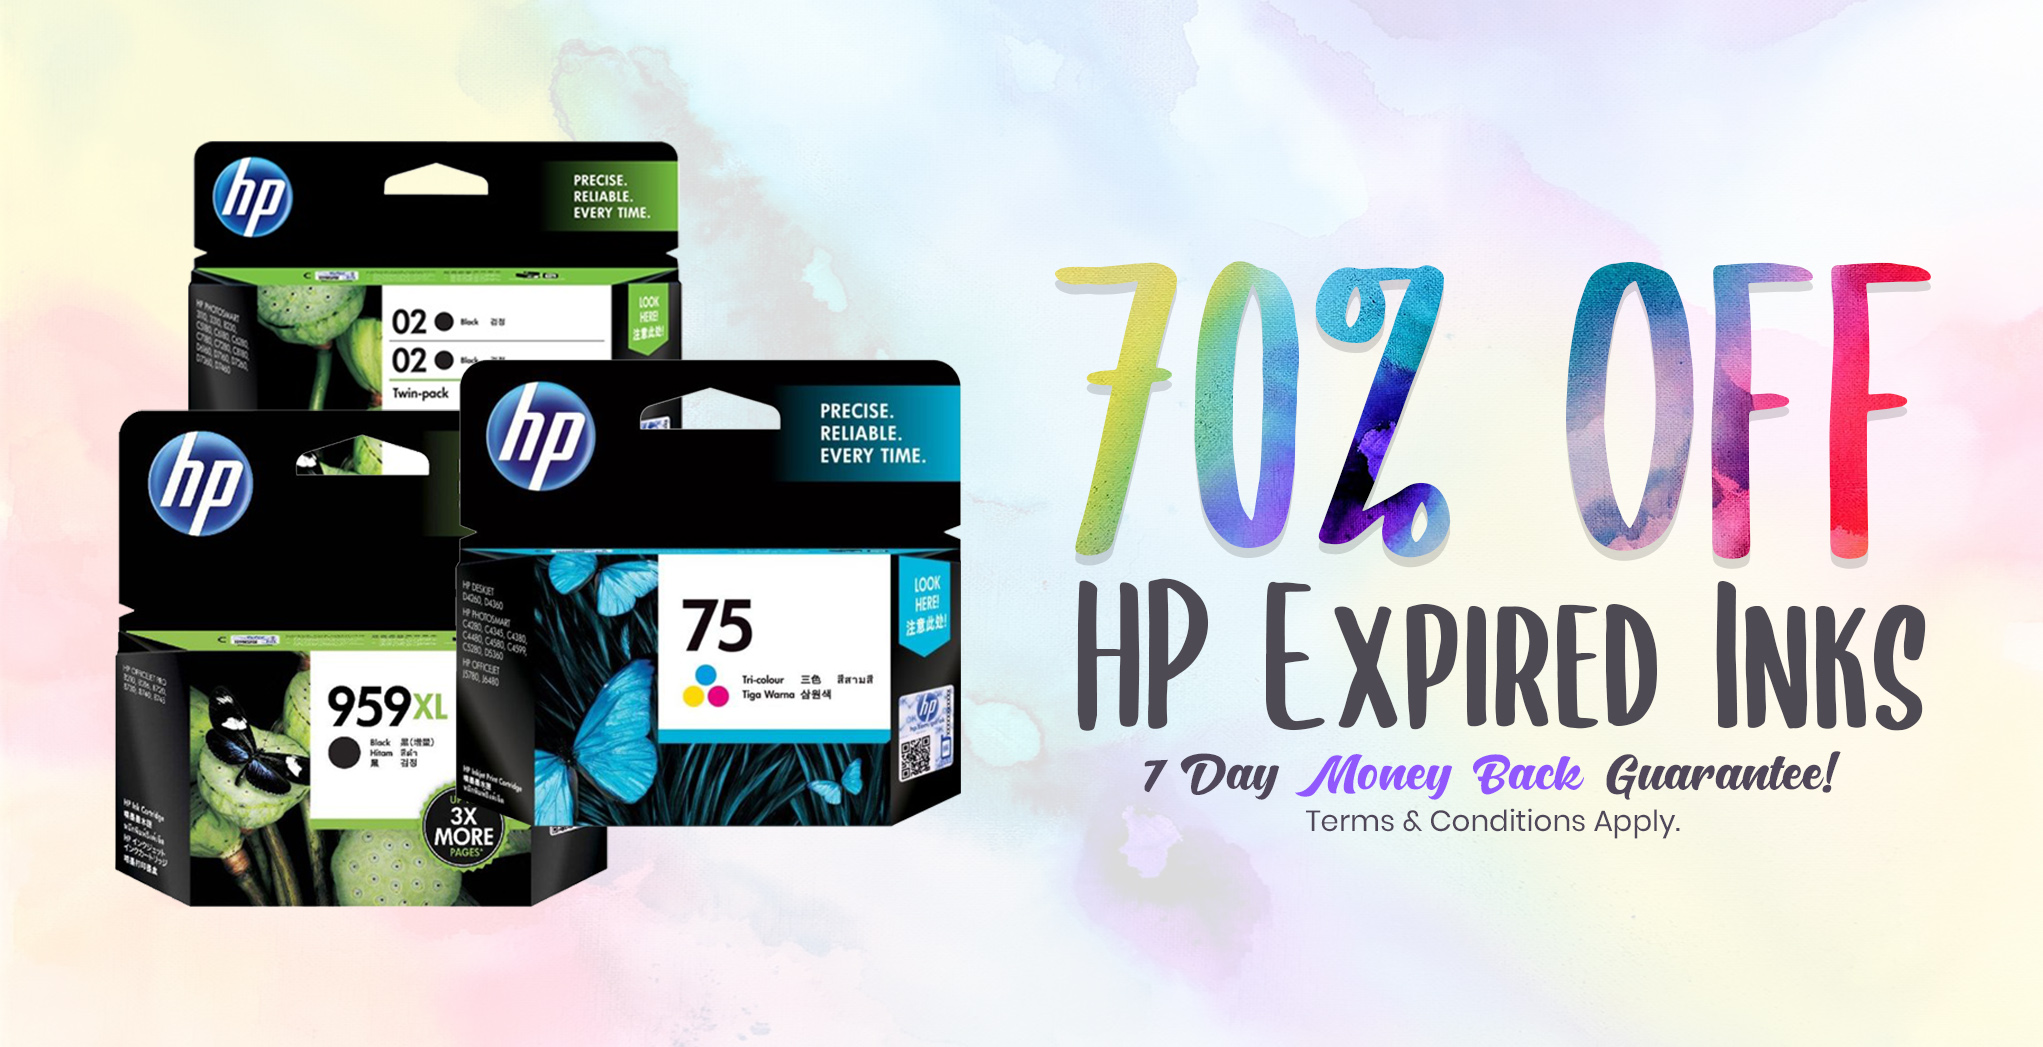 Up to 70% off Expired Genuine HP Inks